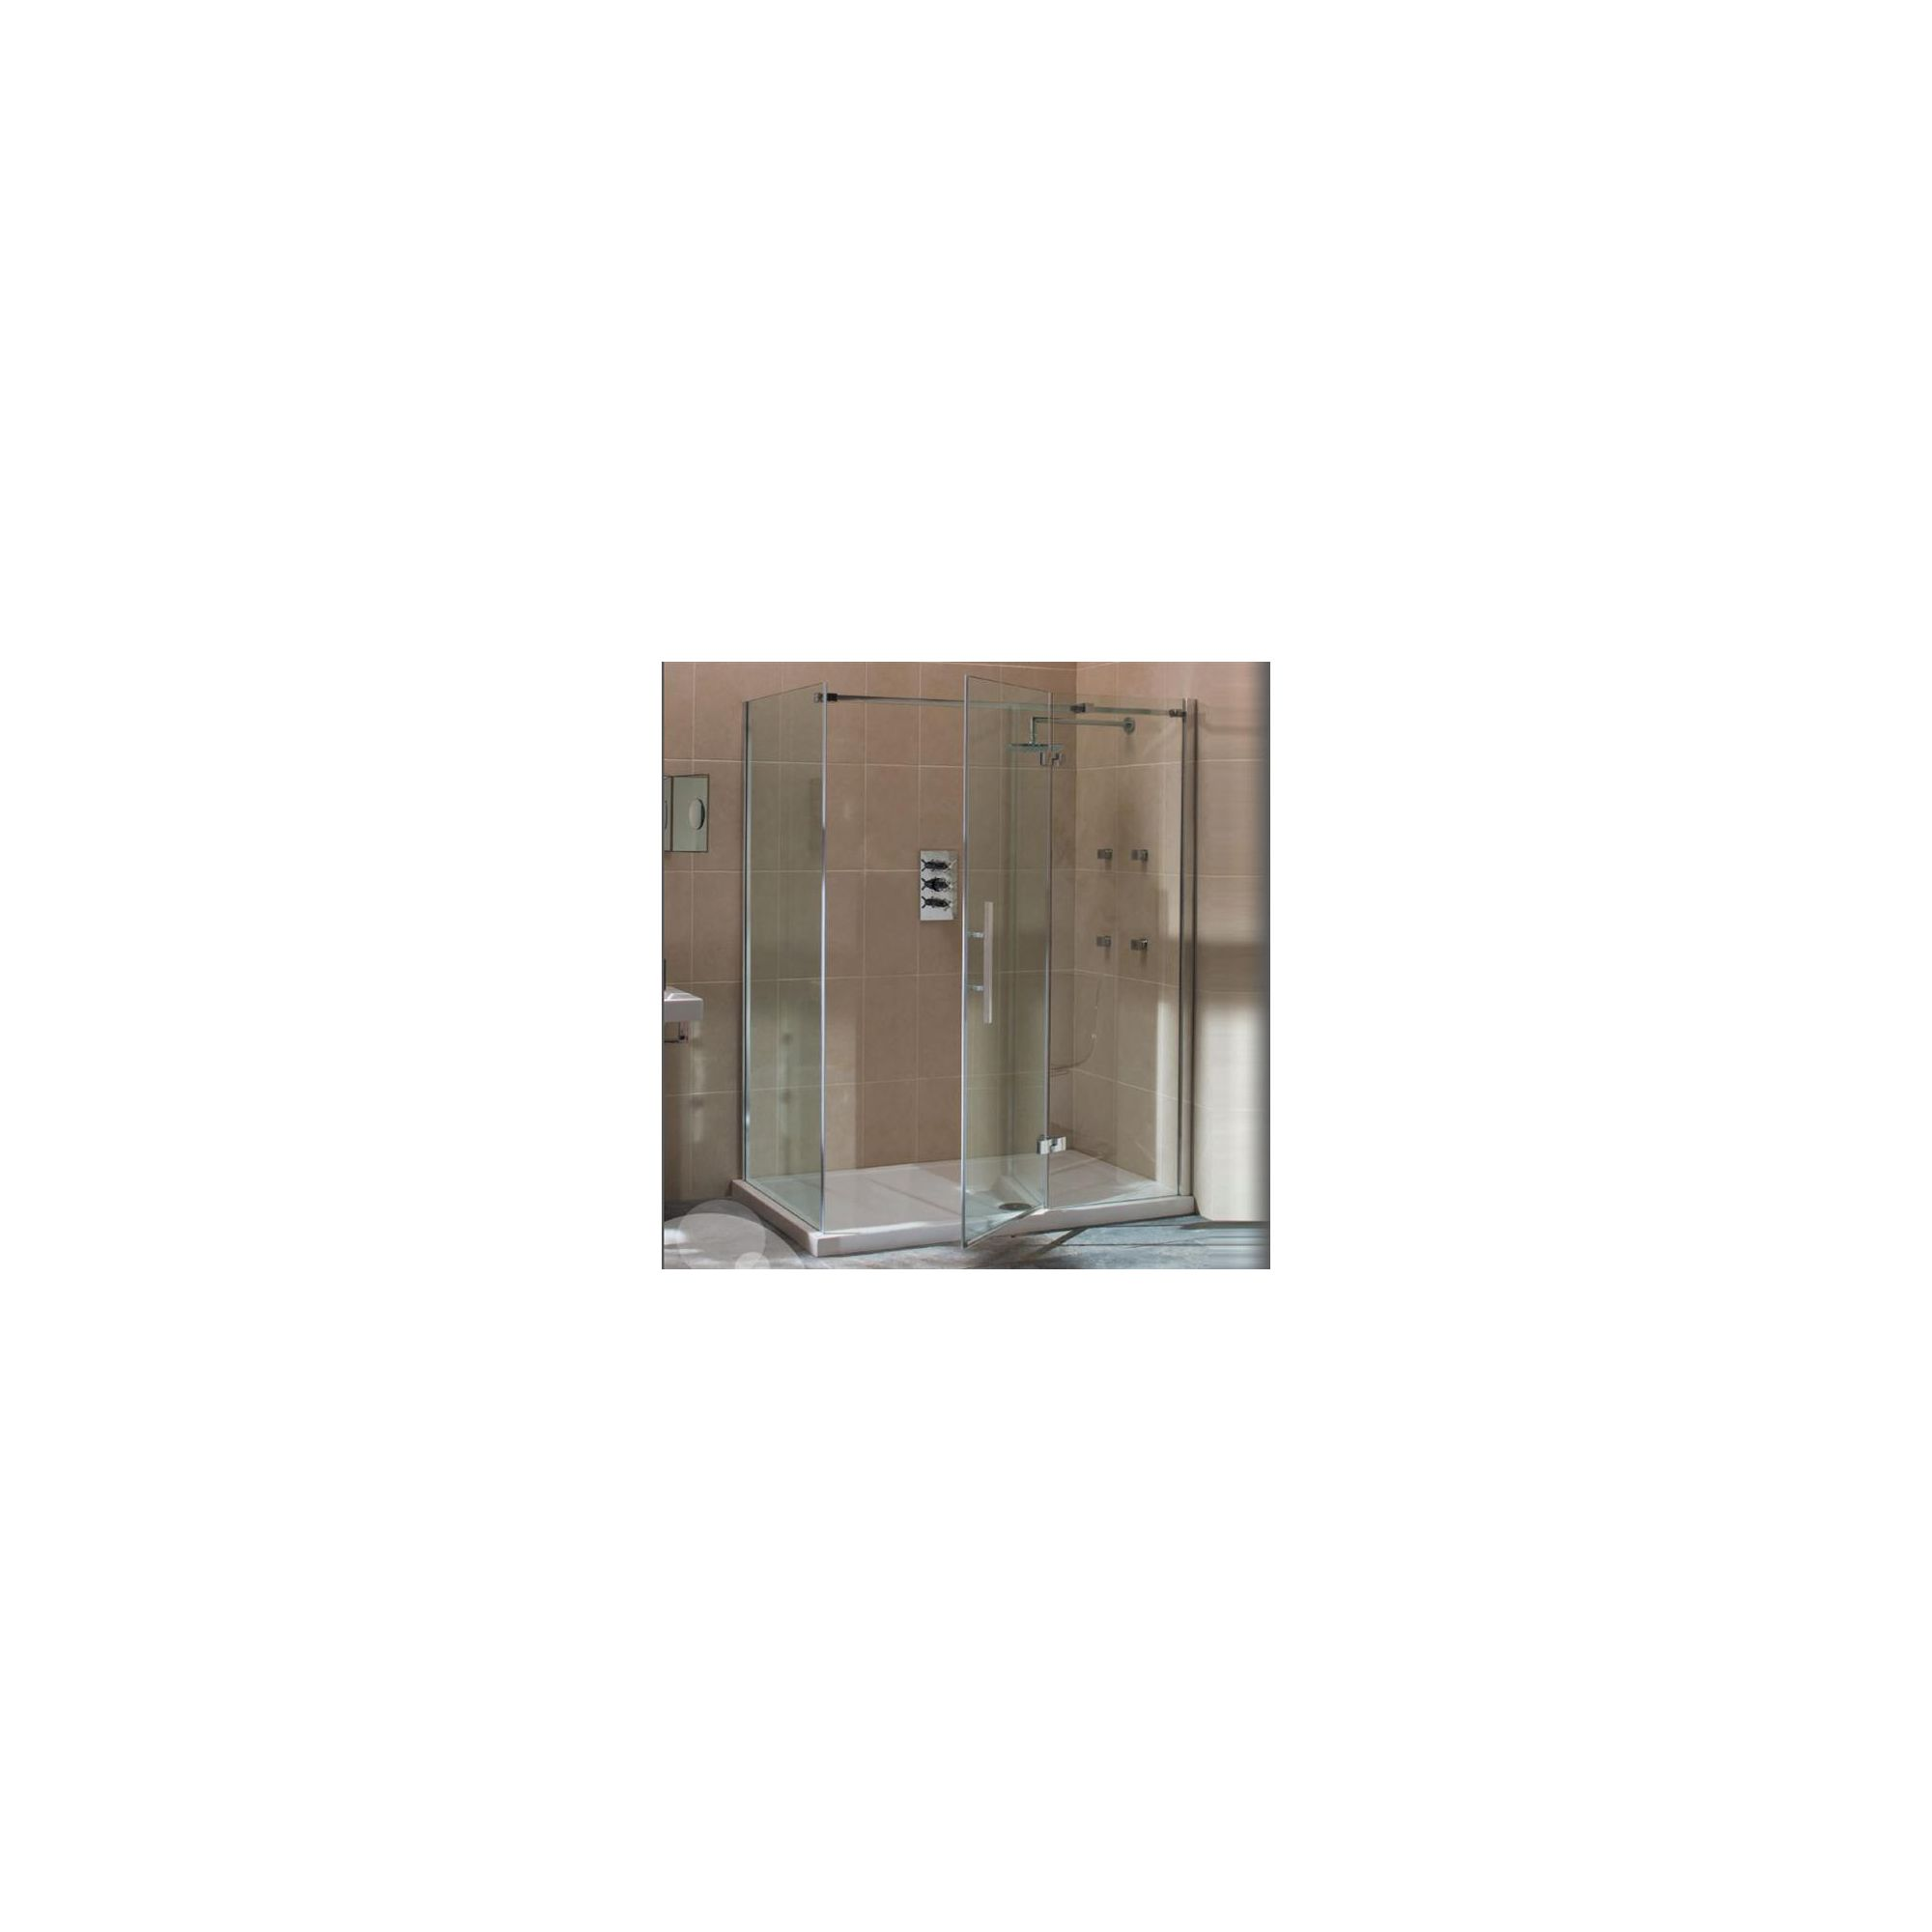 Merlyn Vivid Nine Hinged Door Shower Enclosure with Inline Panel, 1700mm x 800mm, Right Handed, Low Profile Tray, 8mm Glass at Tescos Direct